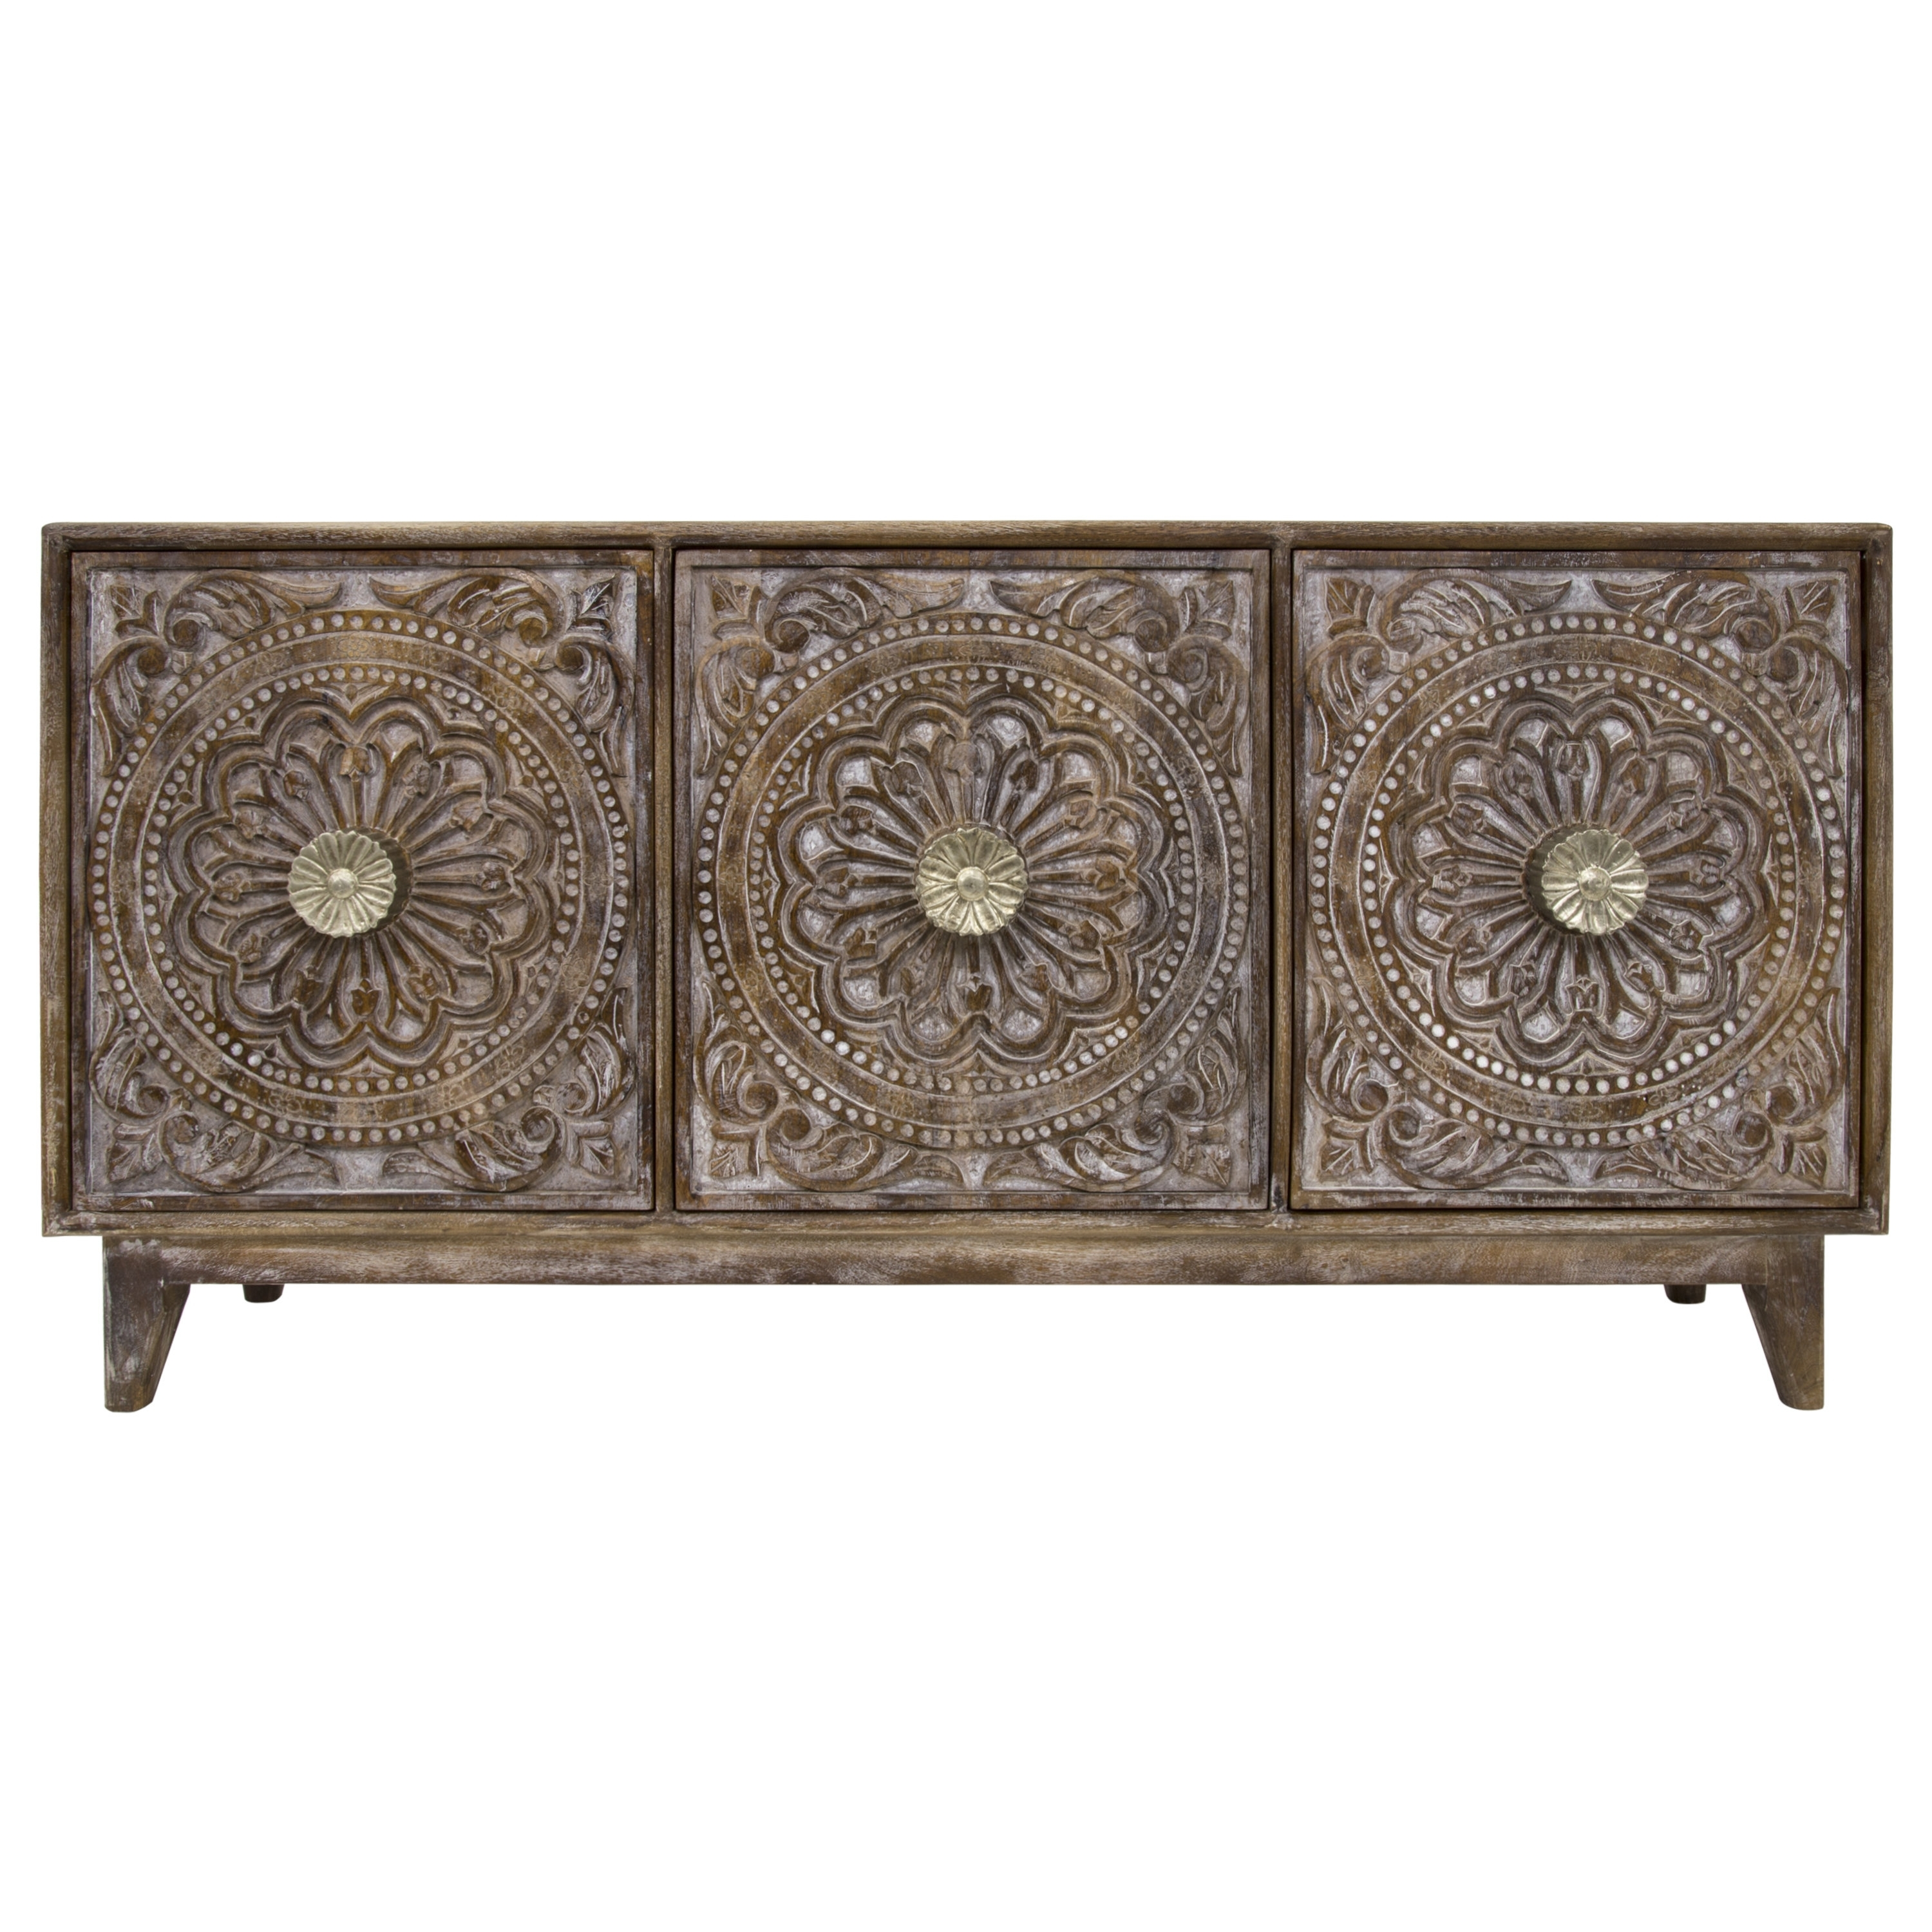 Bungalow Rose Rausch Hand Carved 3 Door Accent Chest | Wayfair within Carved 4 Door Metal Frame Sideboards (Image 16 of 30)